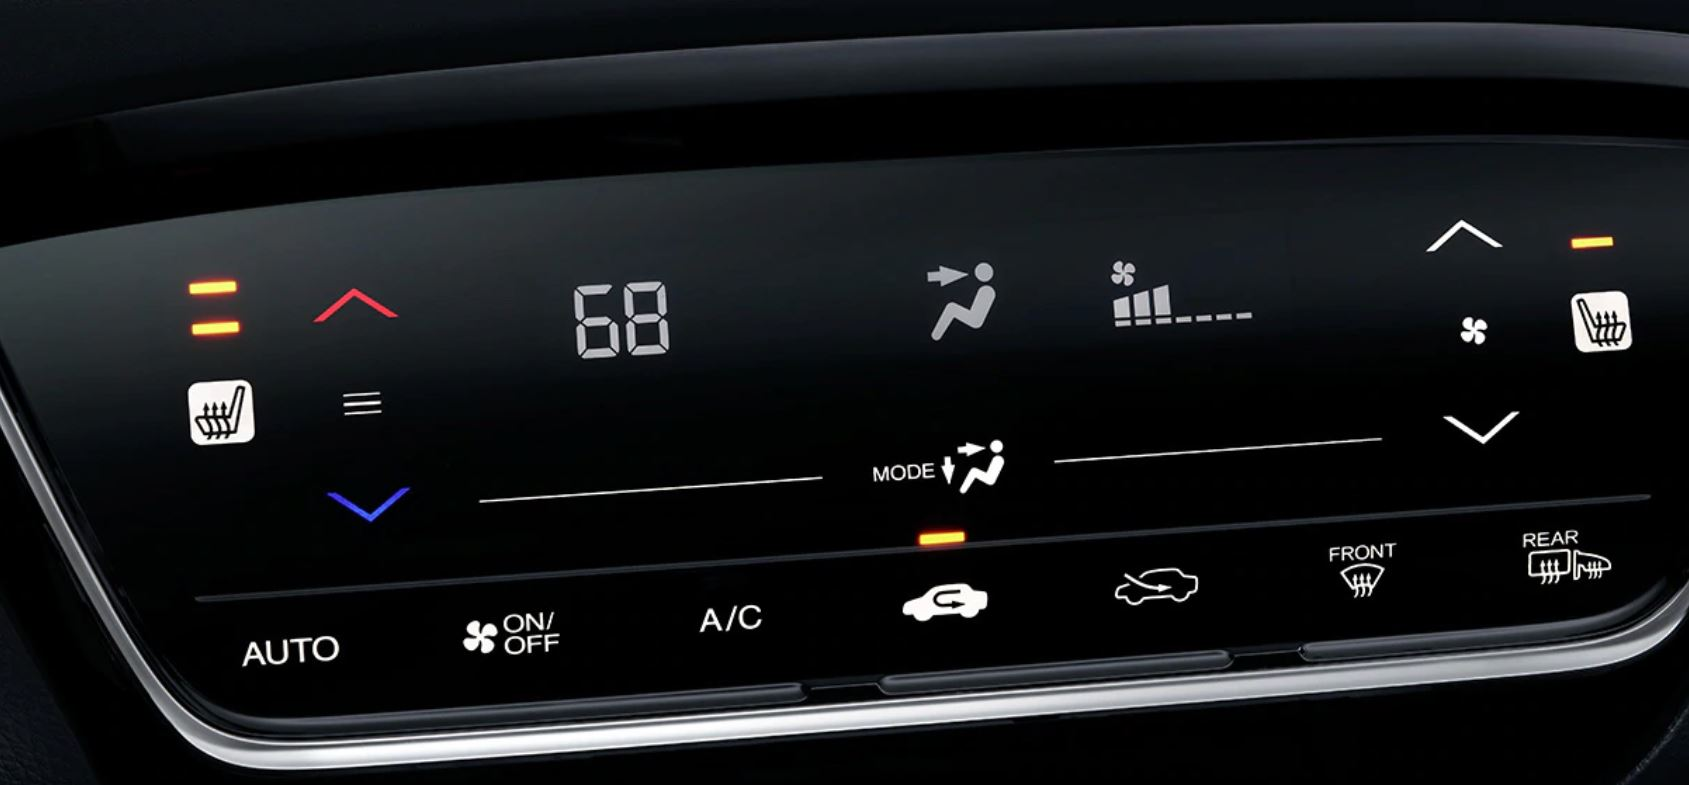 Climate Controls in the 2020 Honda HR-V